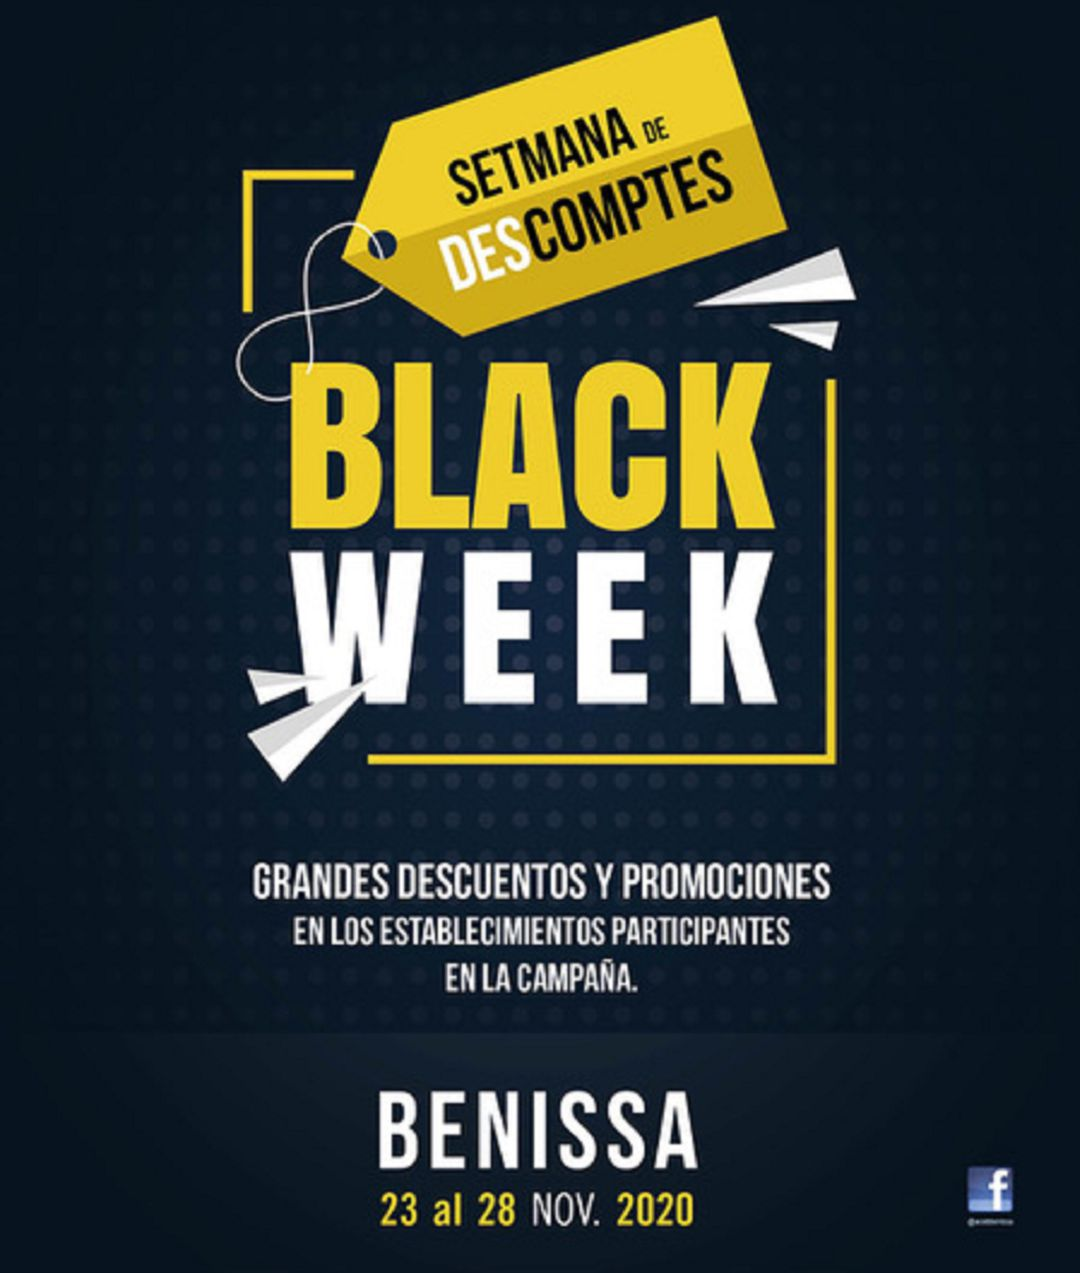 Cartel Benissa Black Week 2020.